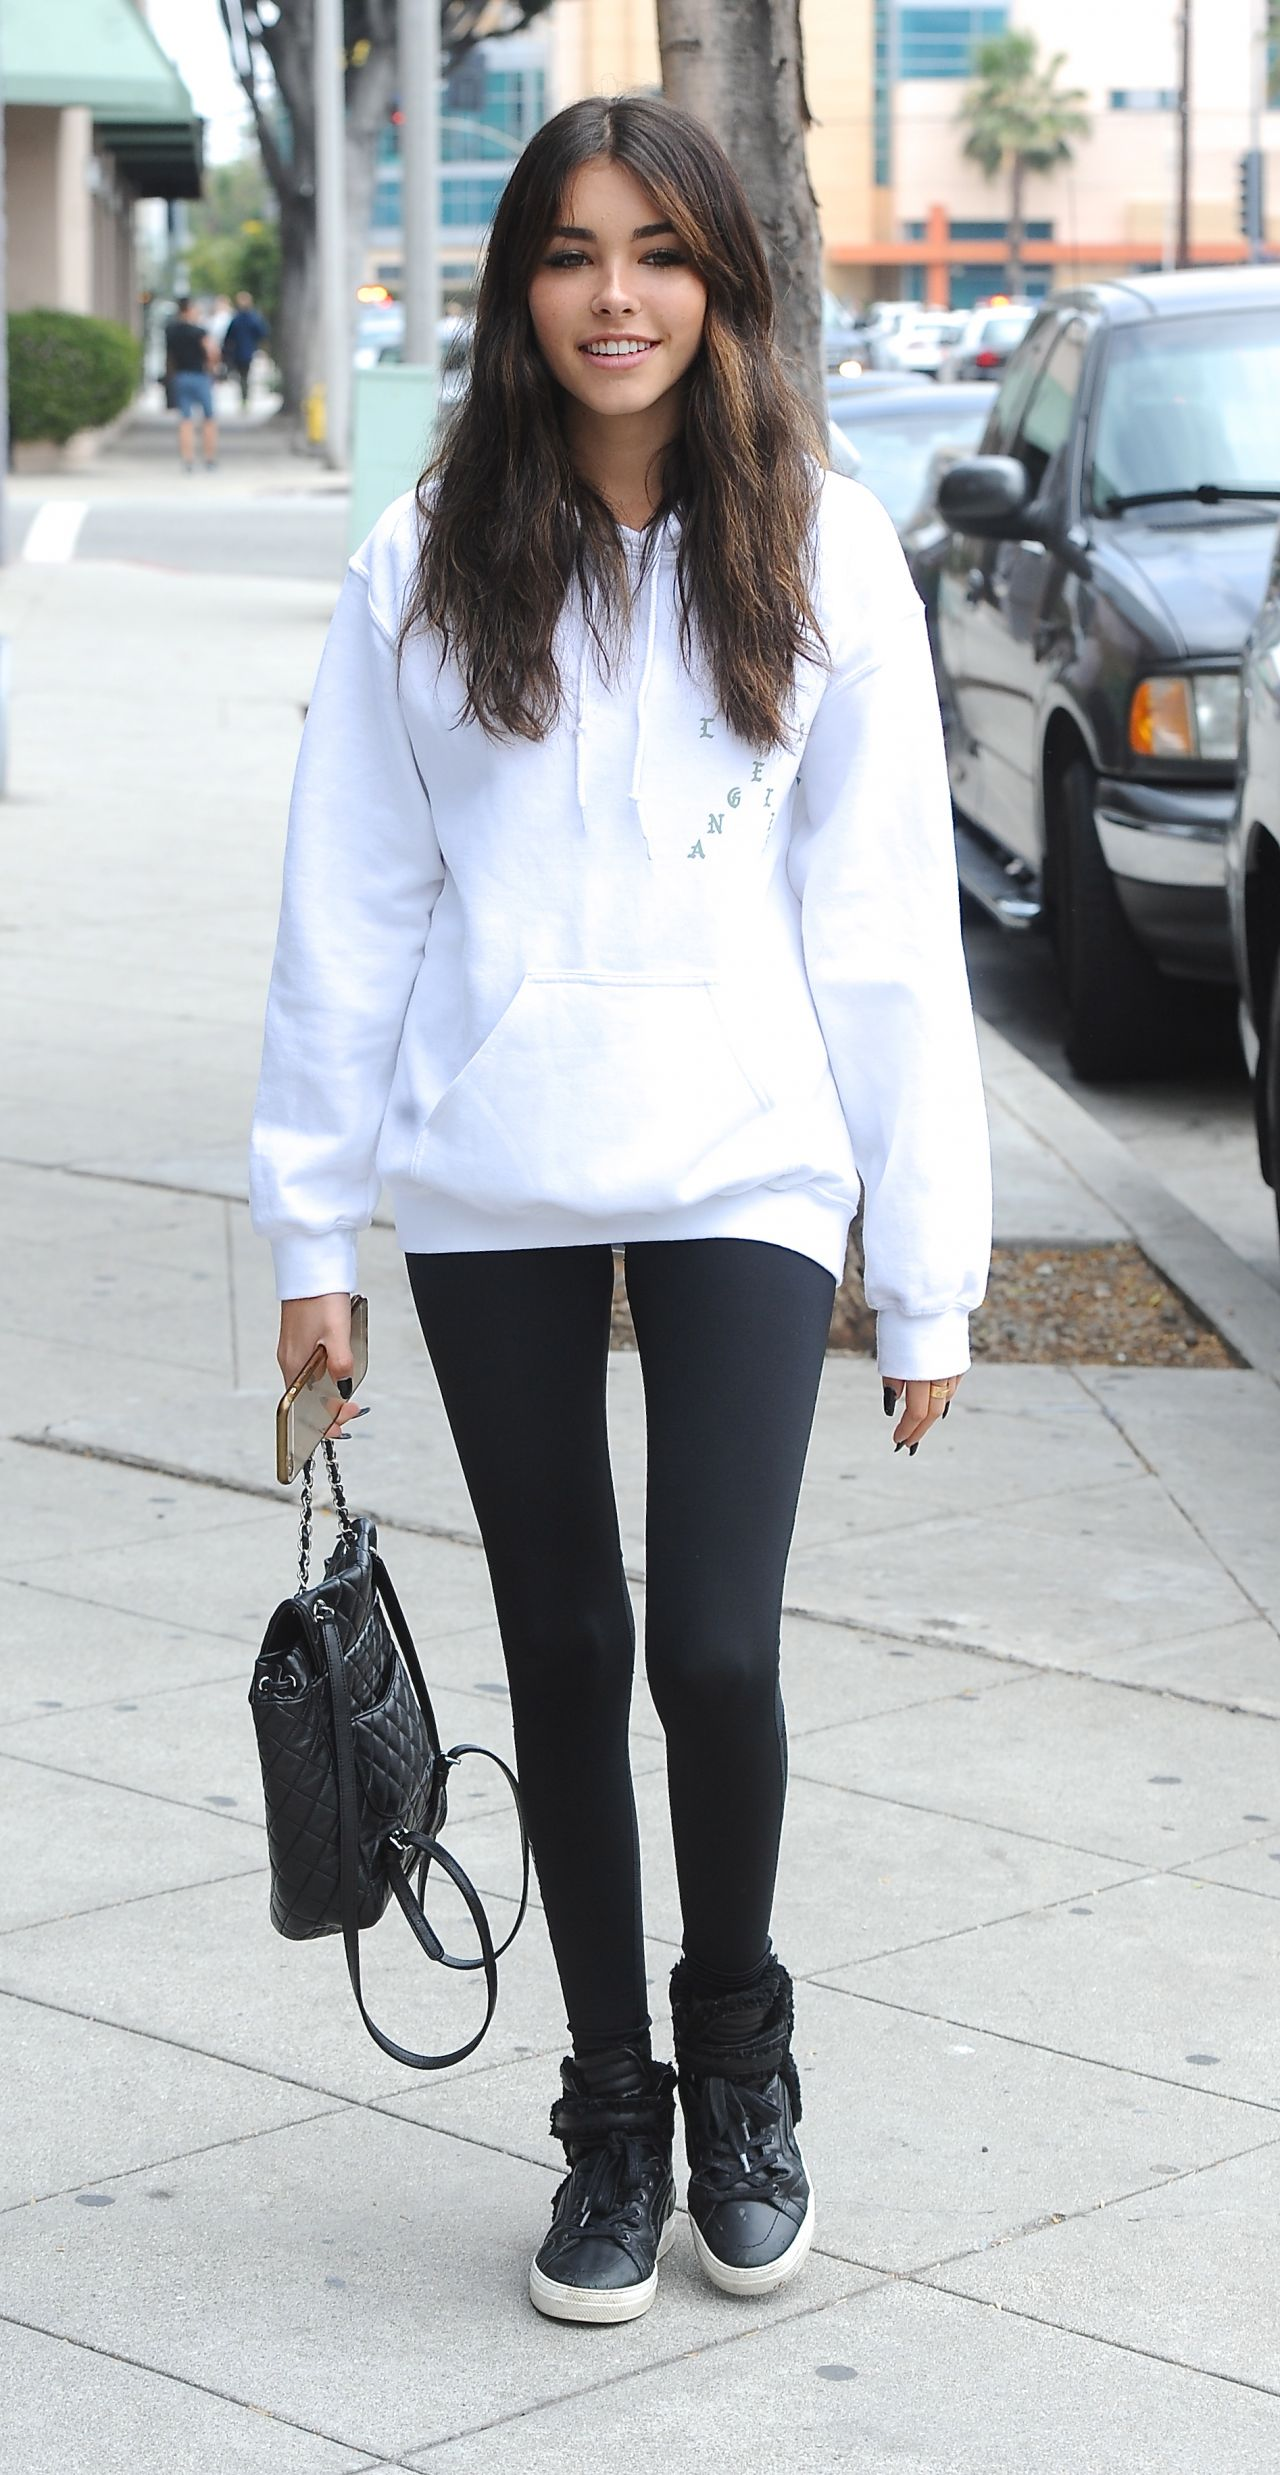 madison beer cute outfit out in los angeles 6142016